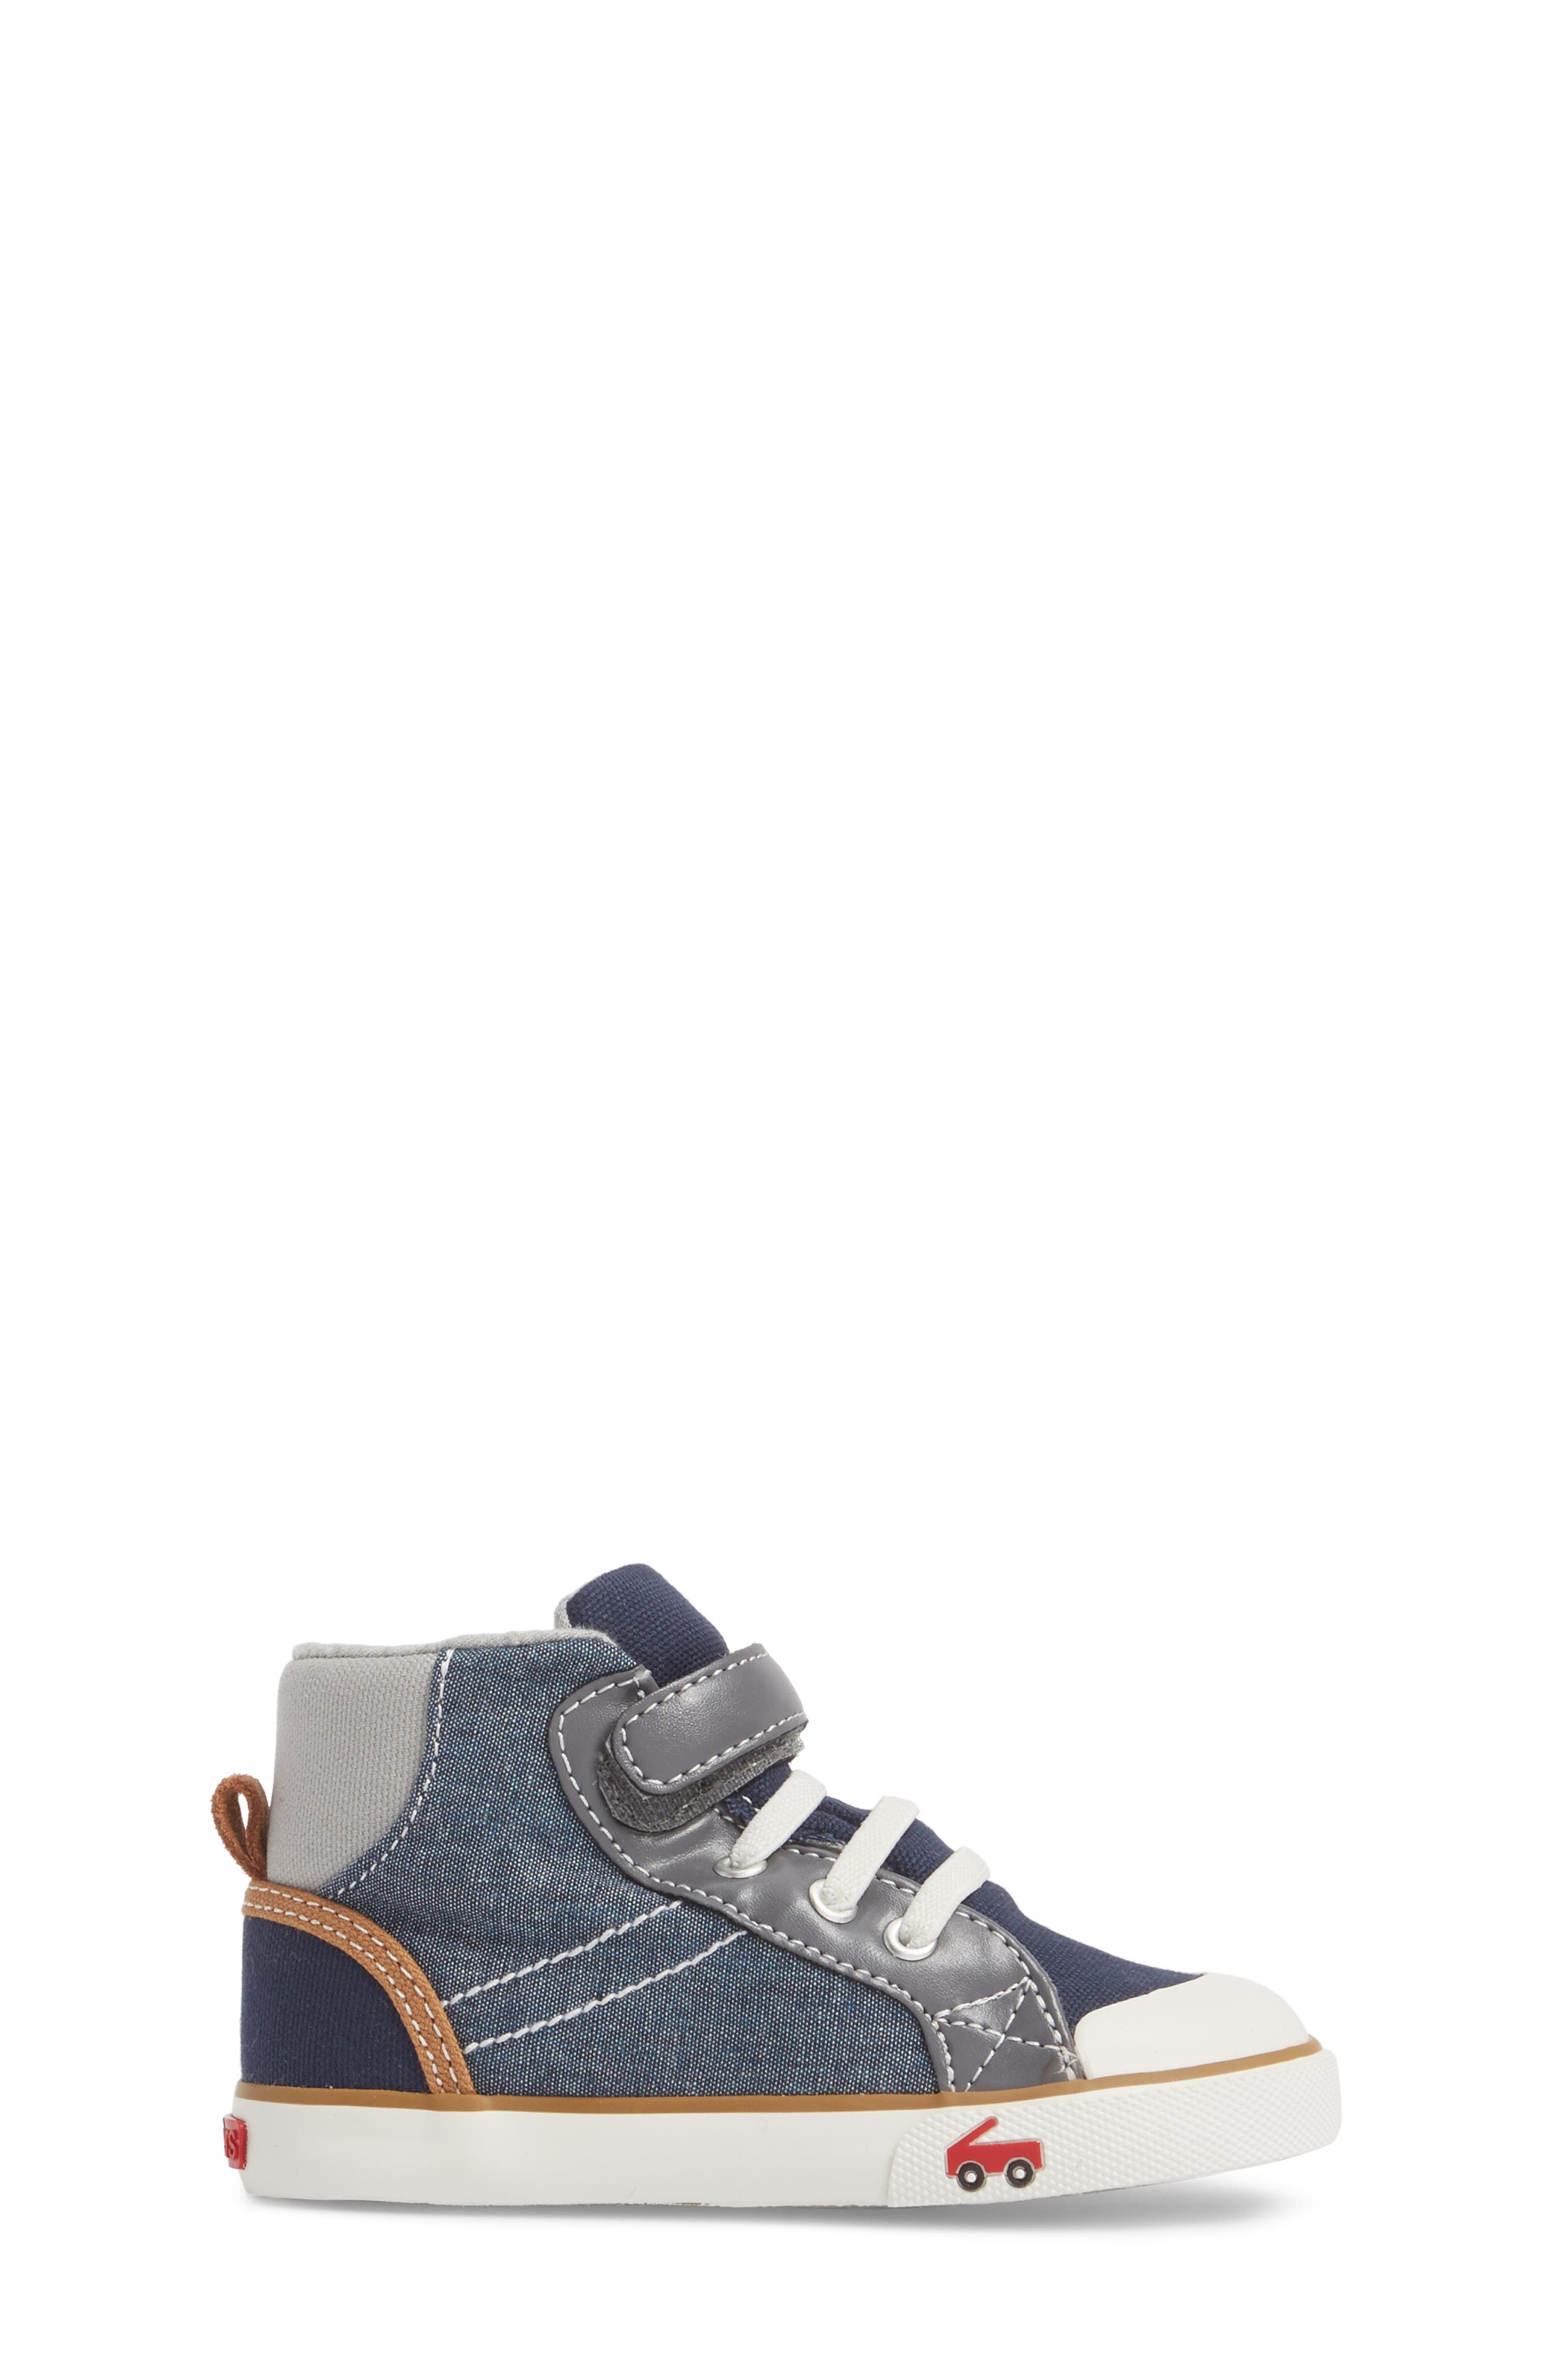 Dane Sneaker,                             Alternate thumbnail 3, color,                             CHAMBRAY MULTI